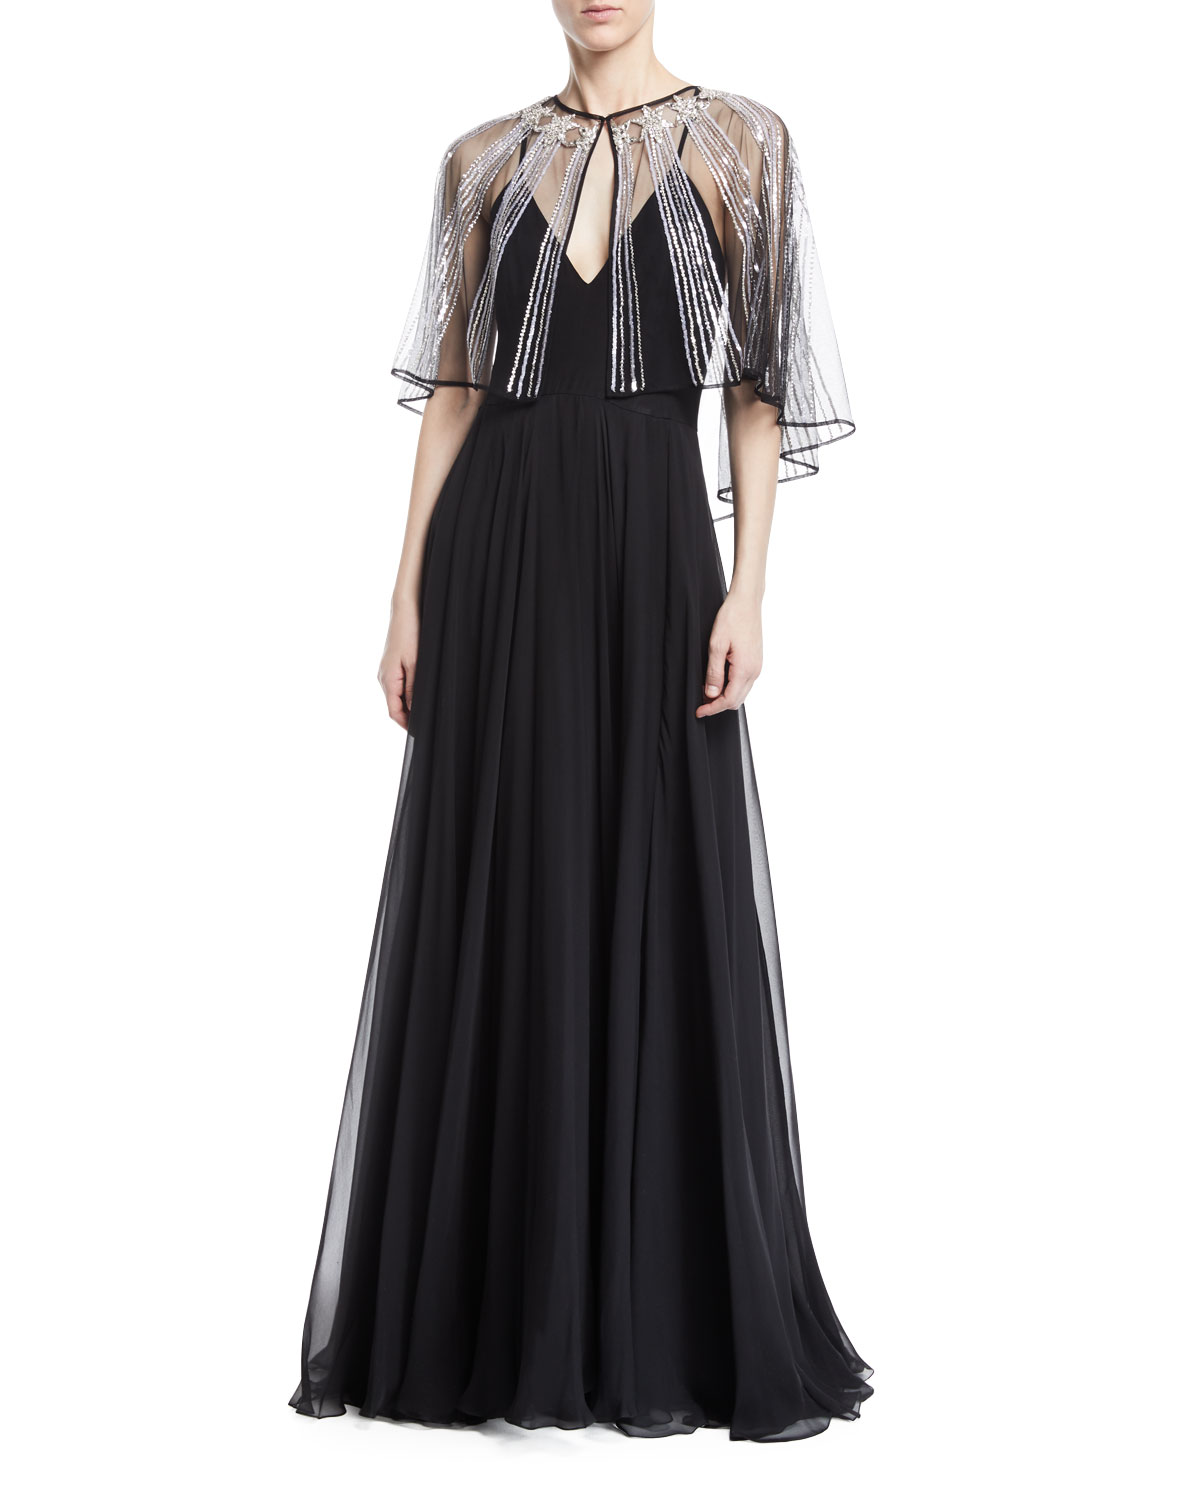 Zuhair Murad Tank Evening Gown w/ Chiffon Beaded Cape | Neiman Marcus